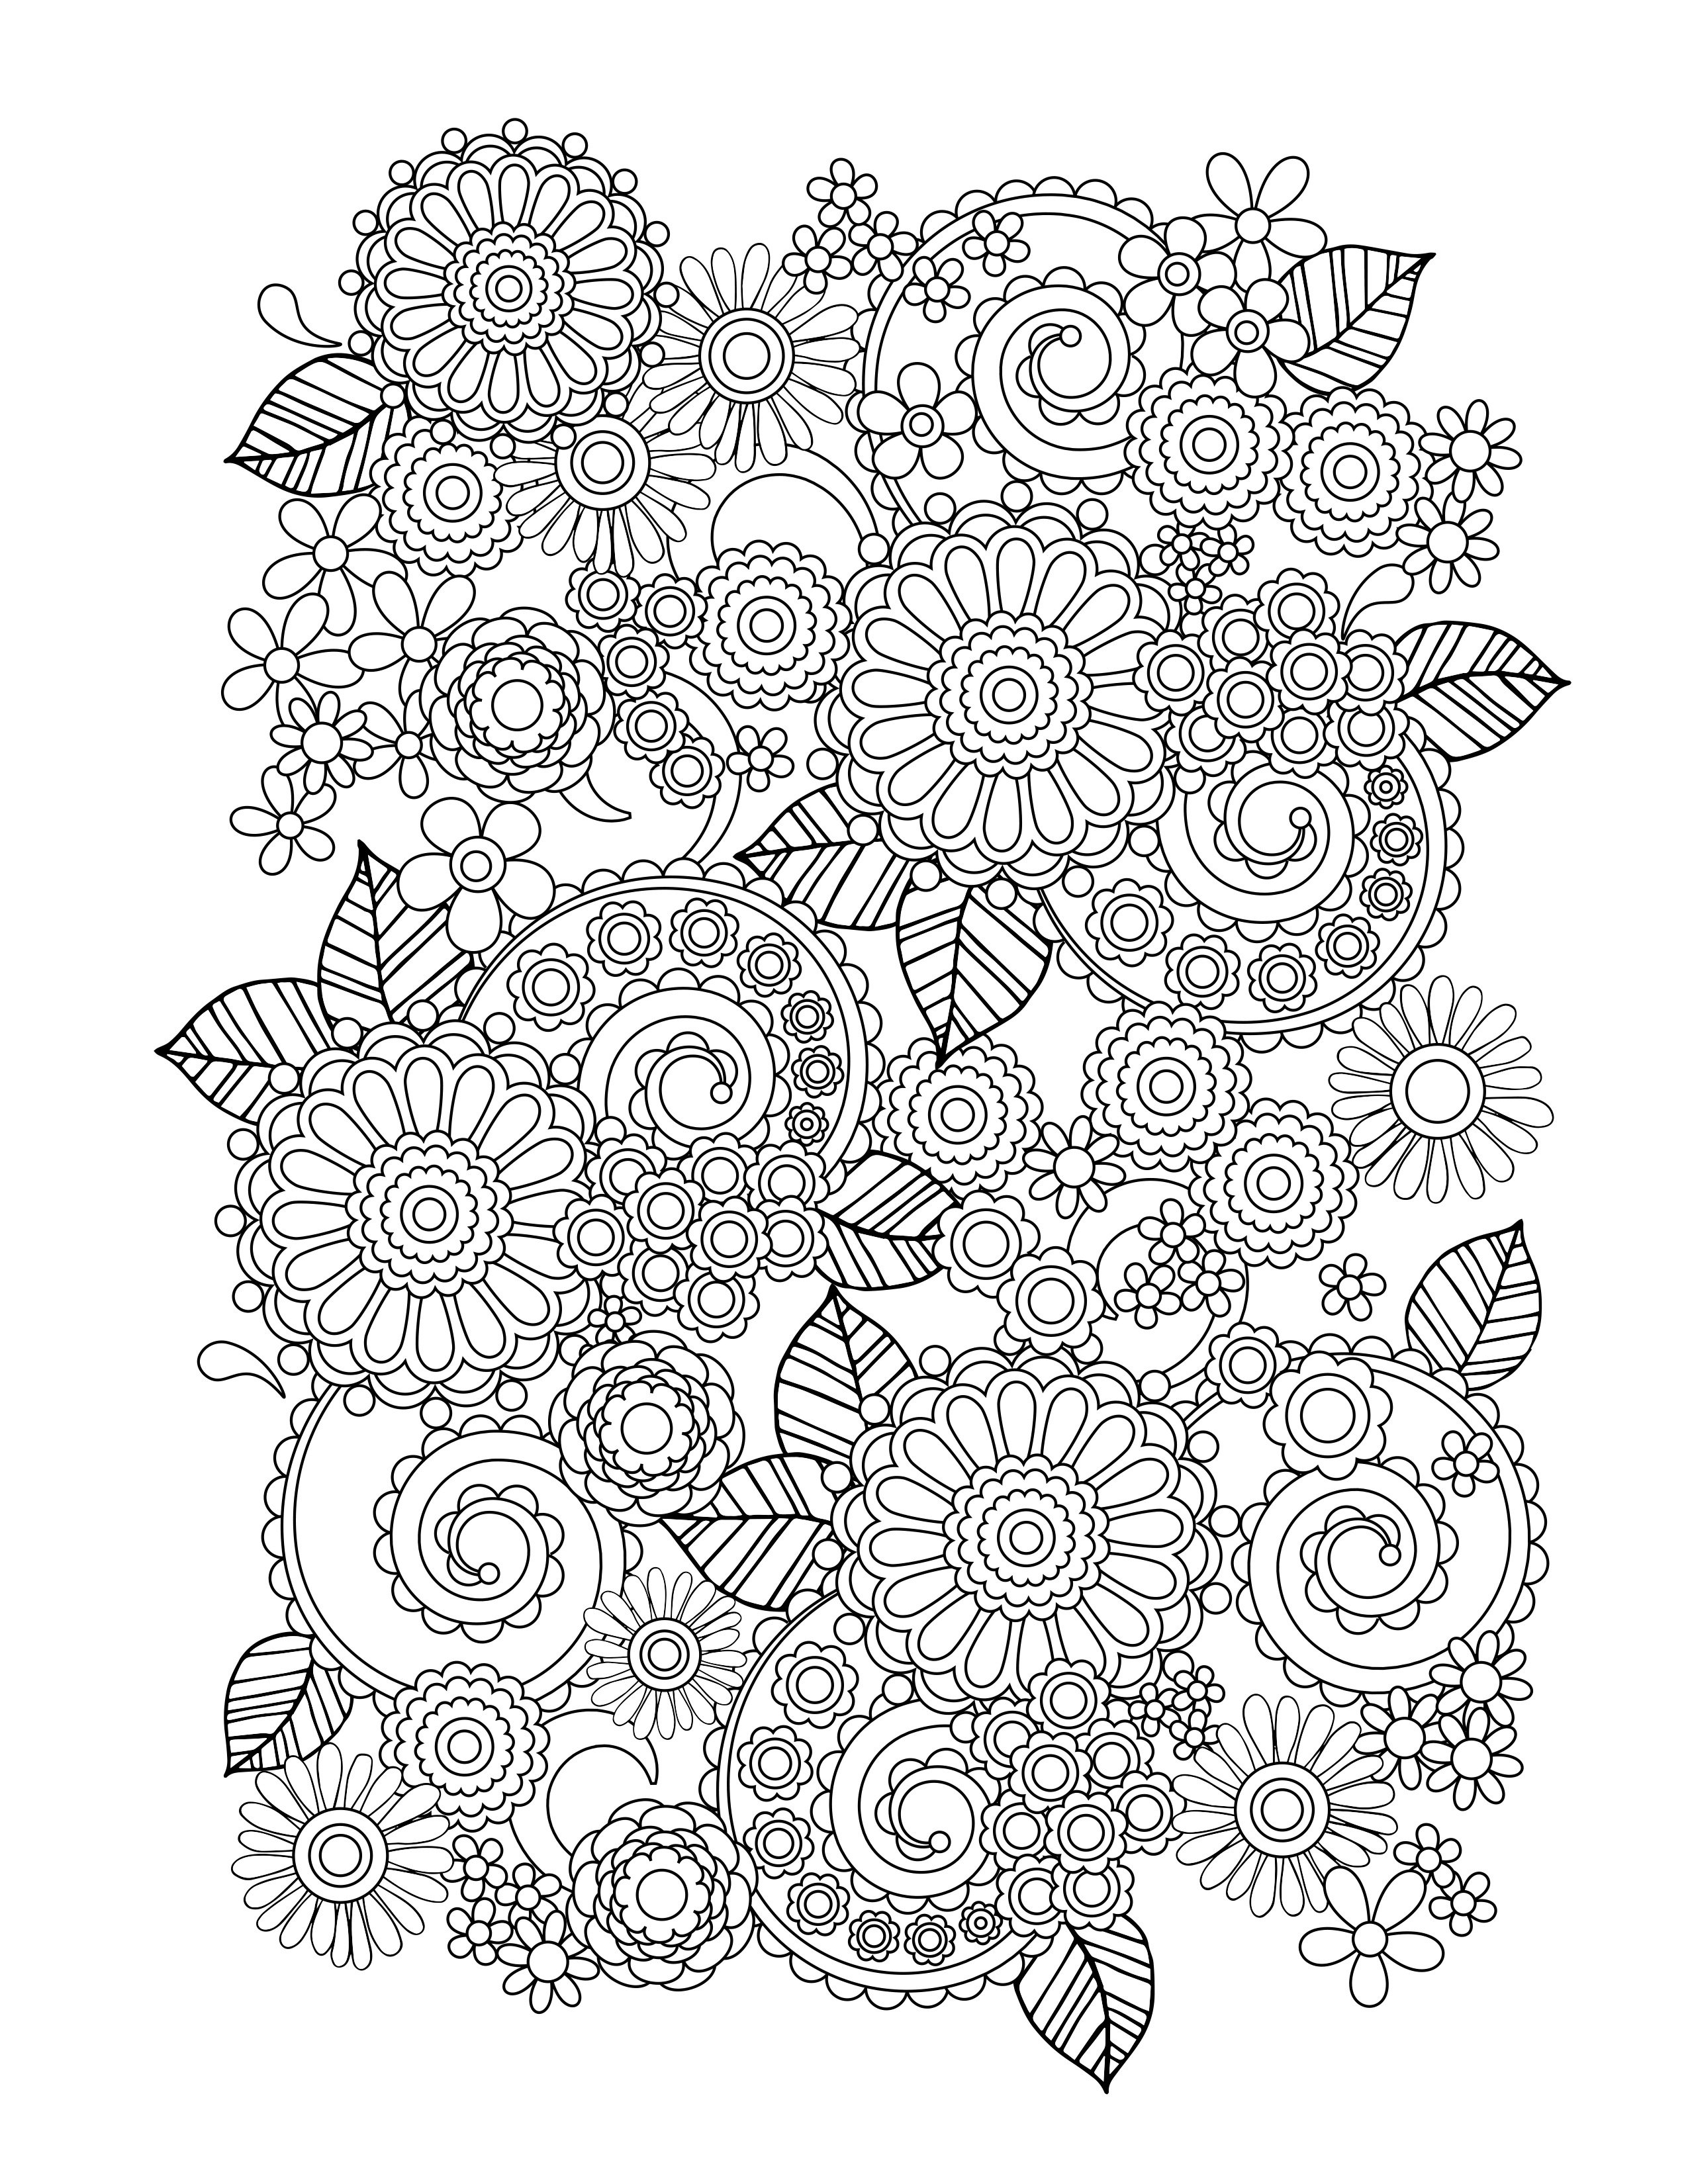 color page flower free printable flower coloring pages for kids cool2bkids flower color page